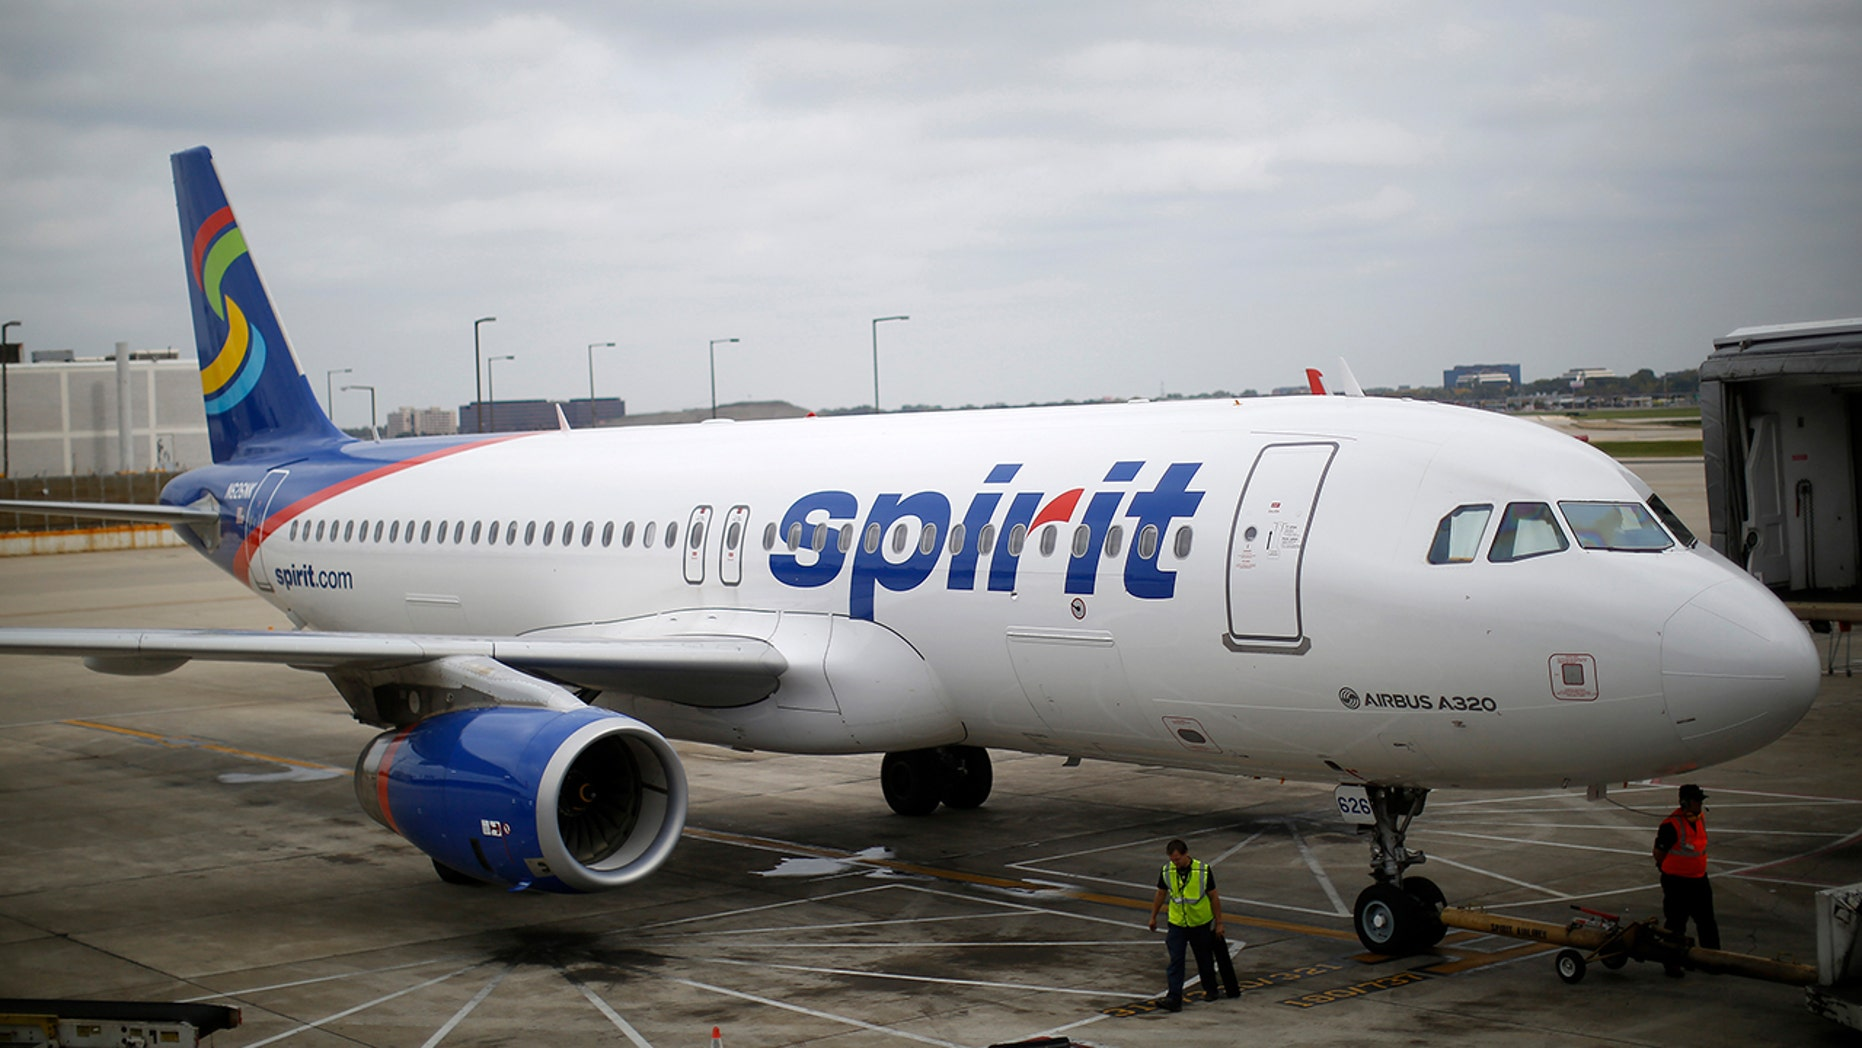 Spirit's flight crew removed Bencivenga from the aircraft, but he allegedly continued to act belligerently once back at the gate.